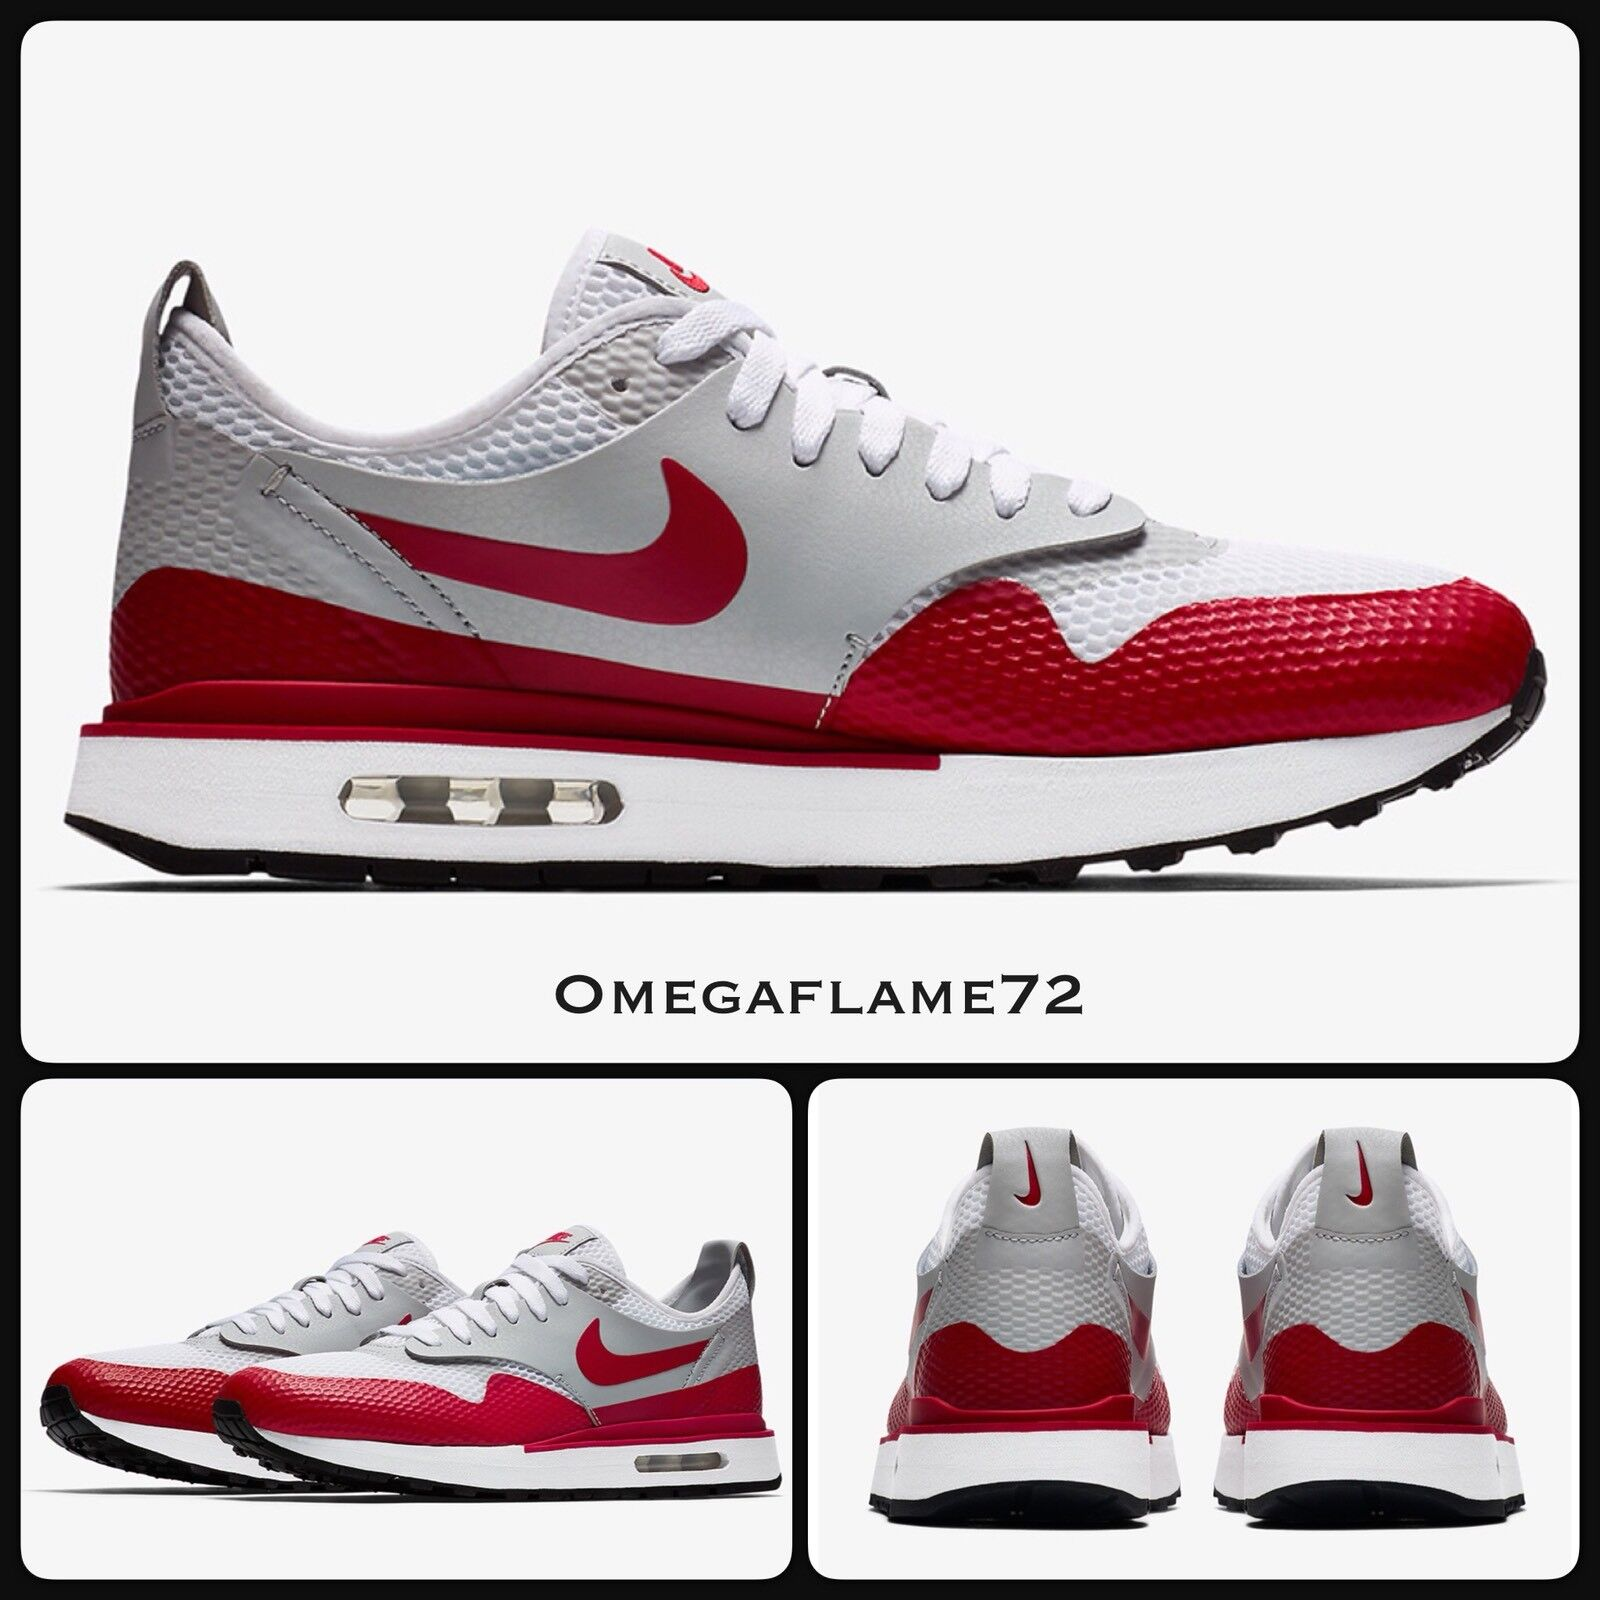 Nike Air Max 1 Royal SE SP, AA0869-10010, EUR 45, US 11 Nikelab rouge, blanc